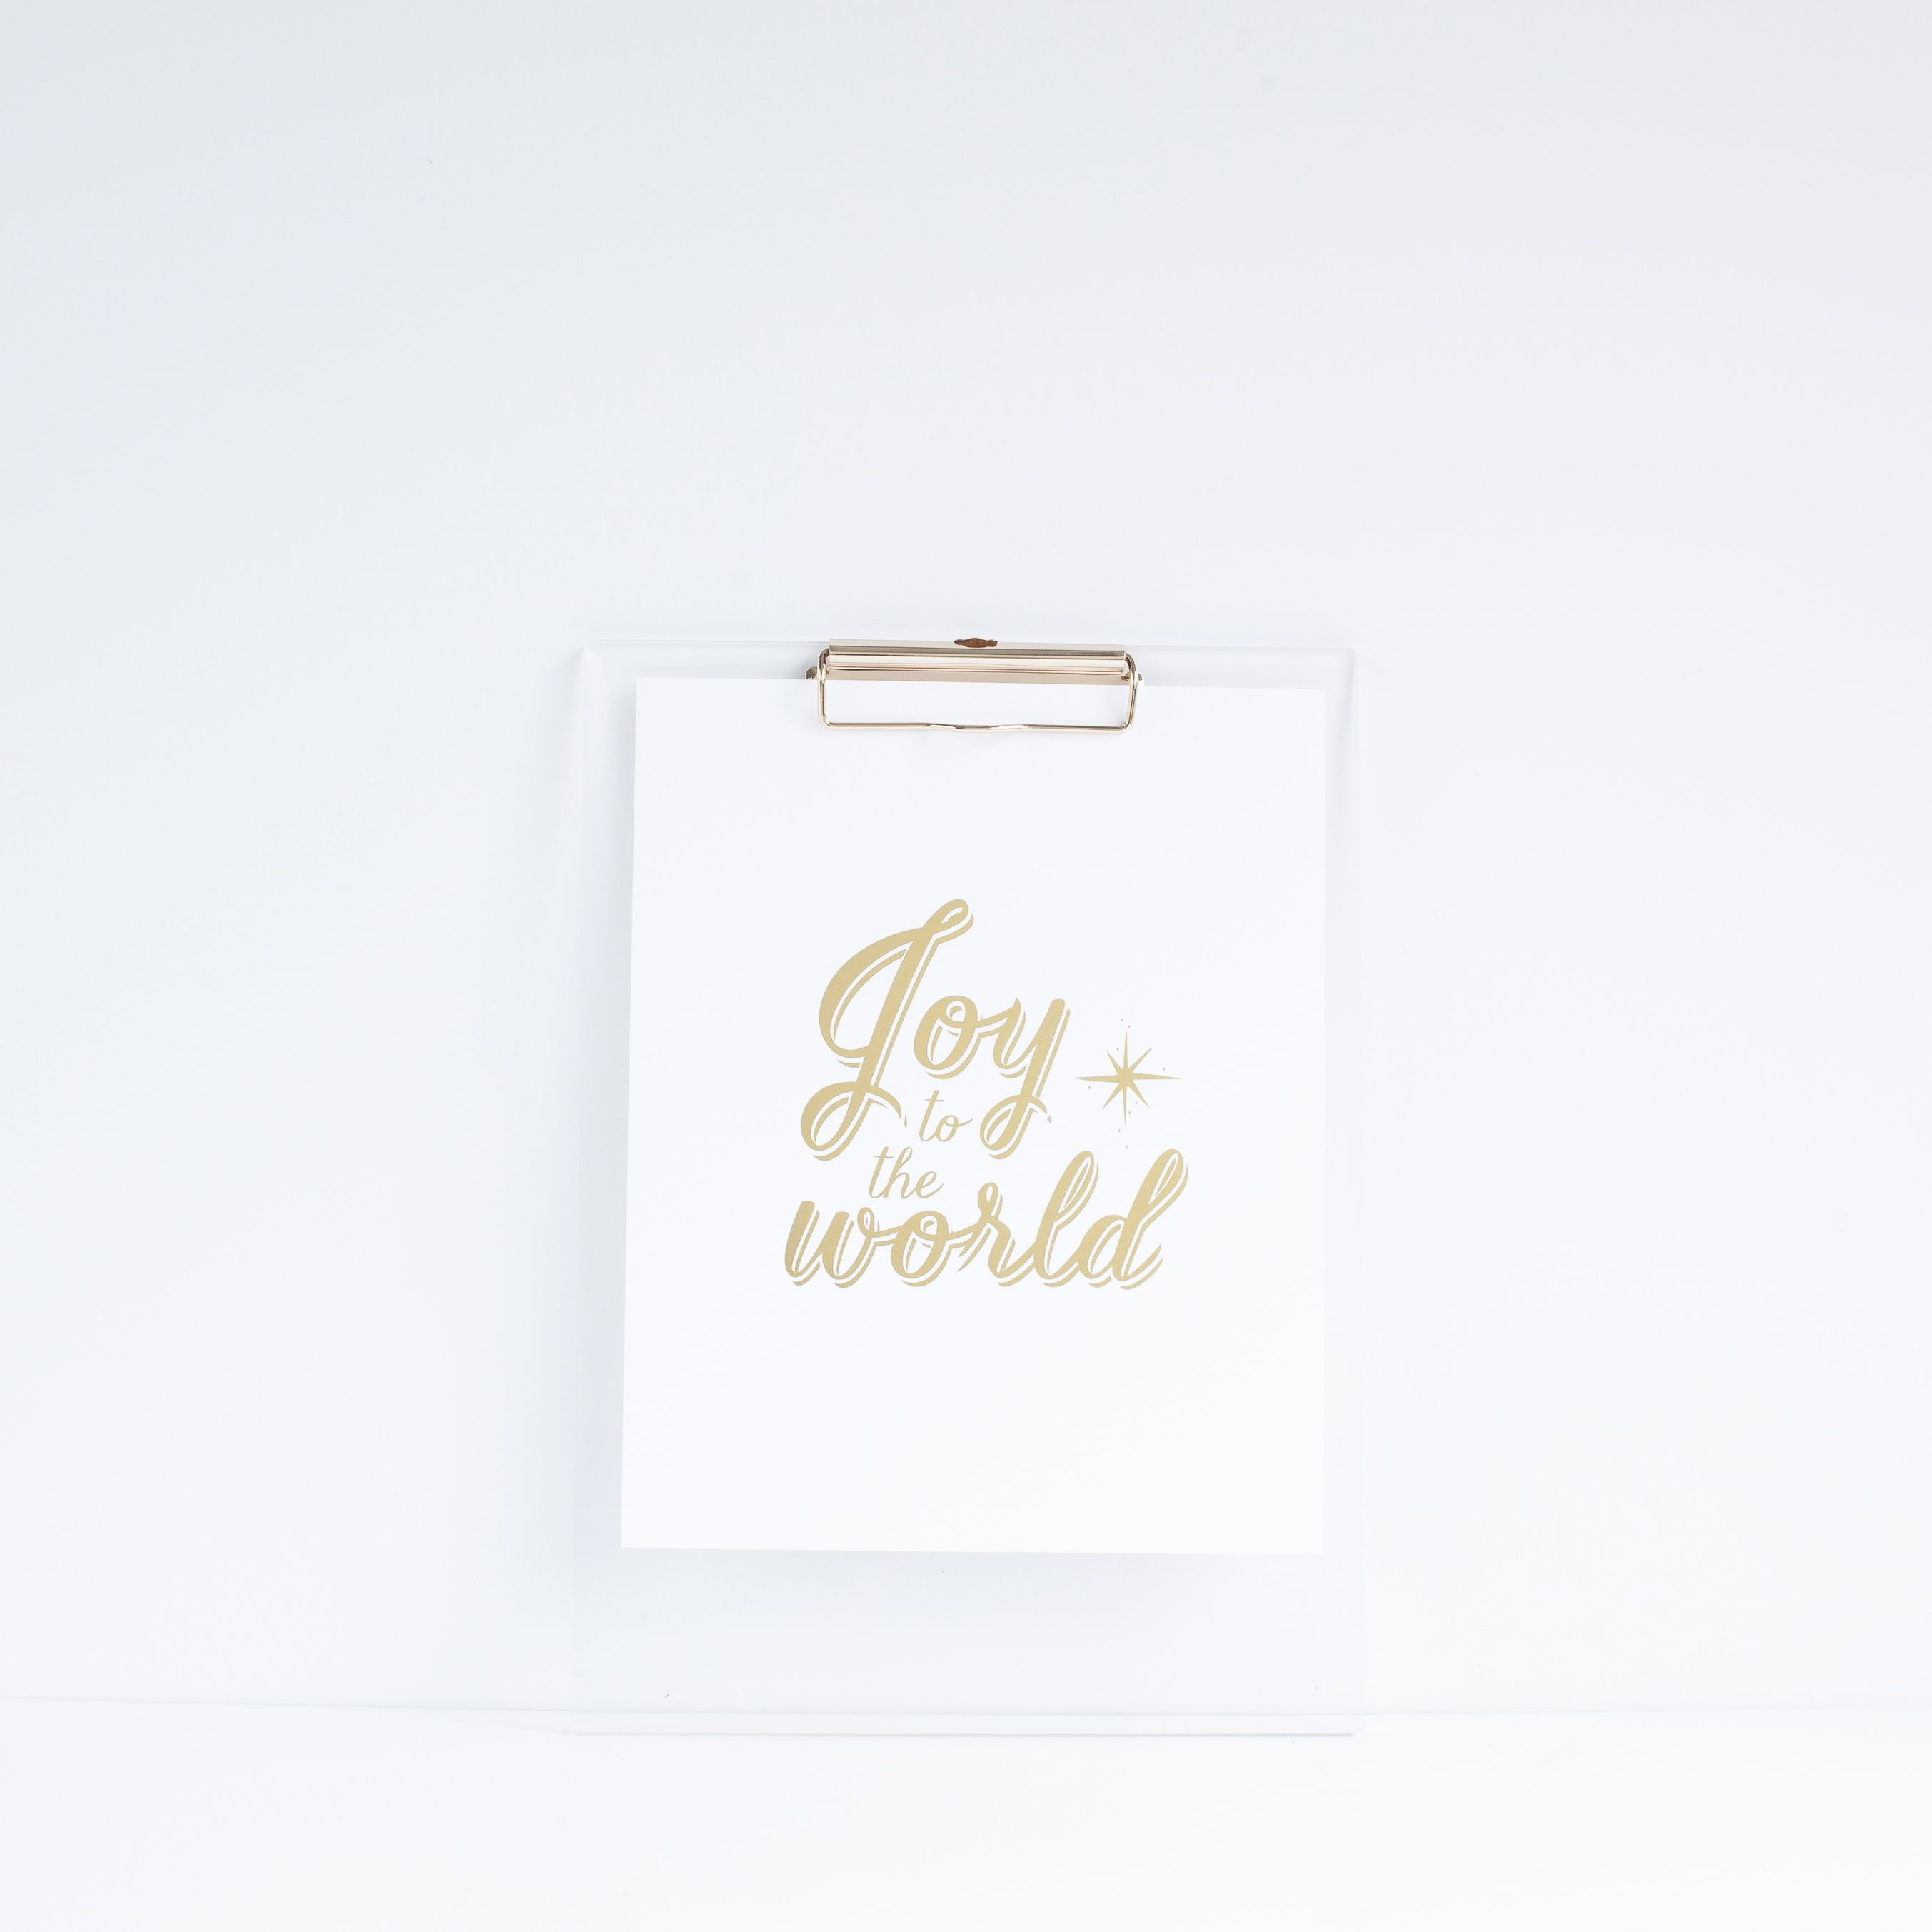 JOY TO THE WORLD gold foil holiday print onto bright white stock | b is for bonnie shop | photography by Shay Cochrane Photography